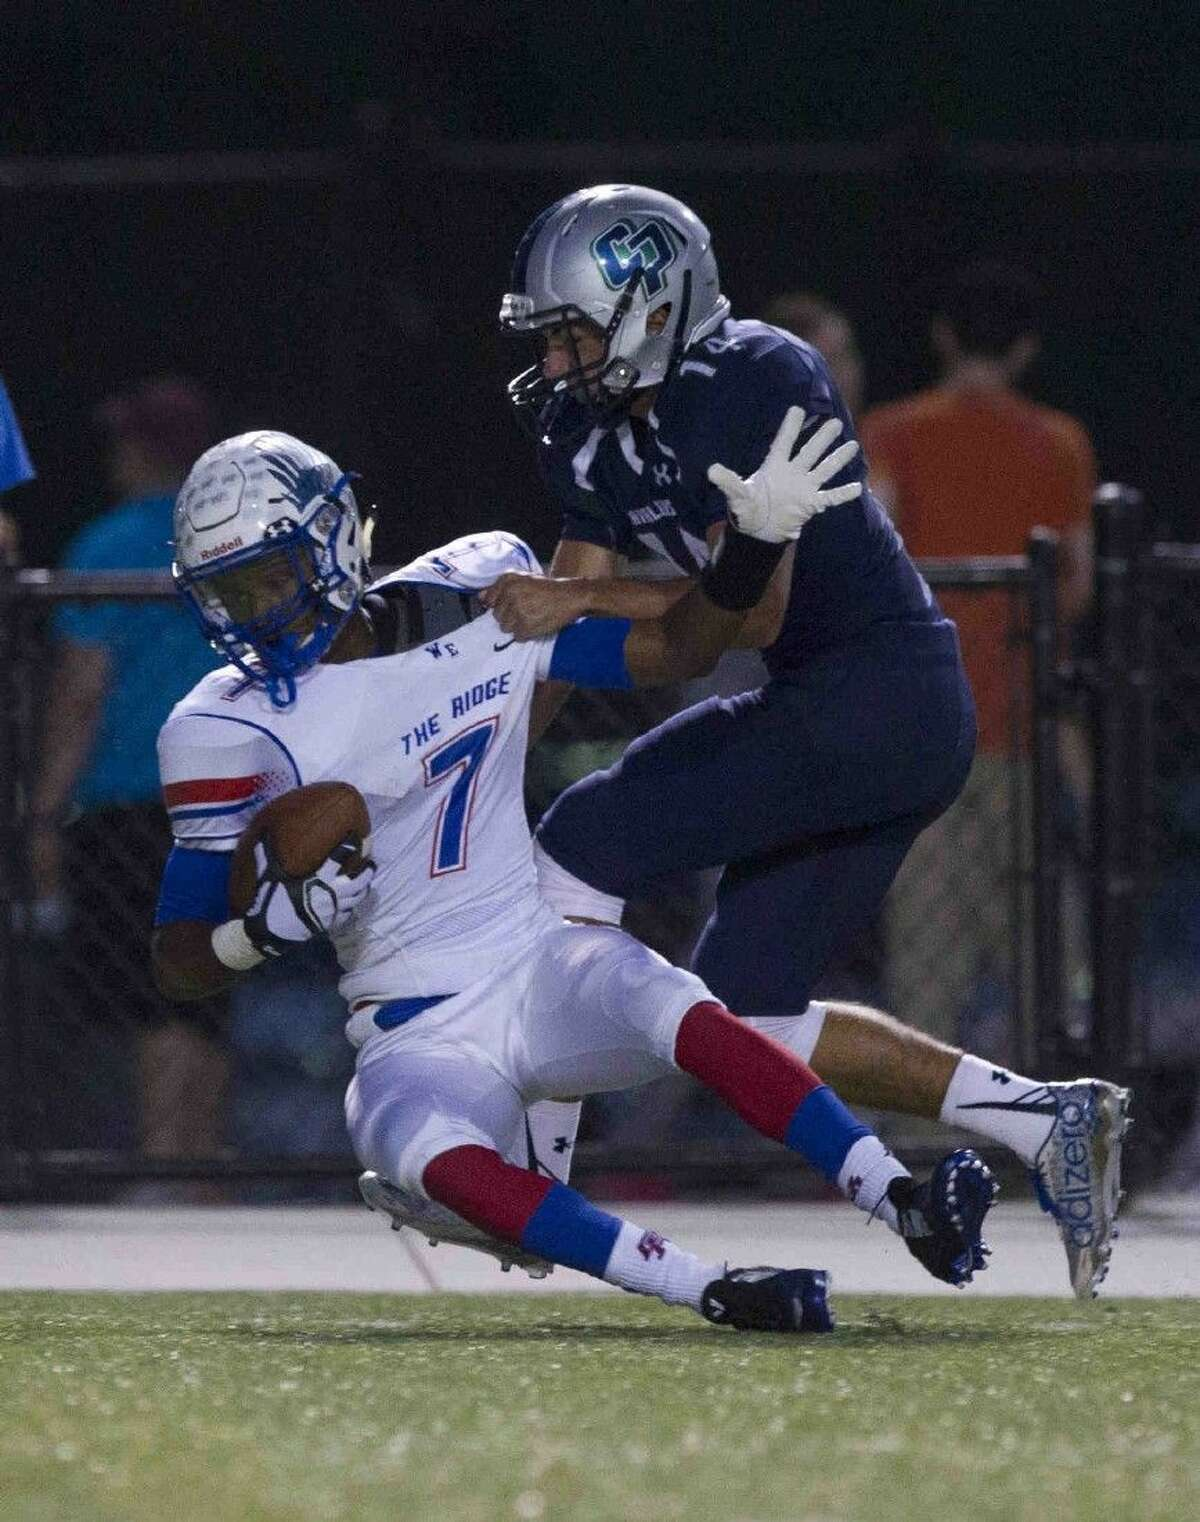 Oak Ridge wide receiver Lamar Handy is brought down during a football game Friday. To view or purchase this photo and others like it, visit HCNpics.com.